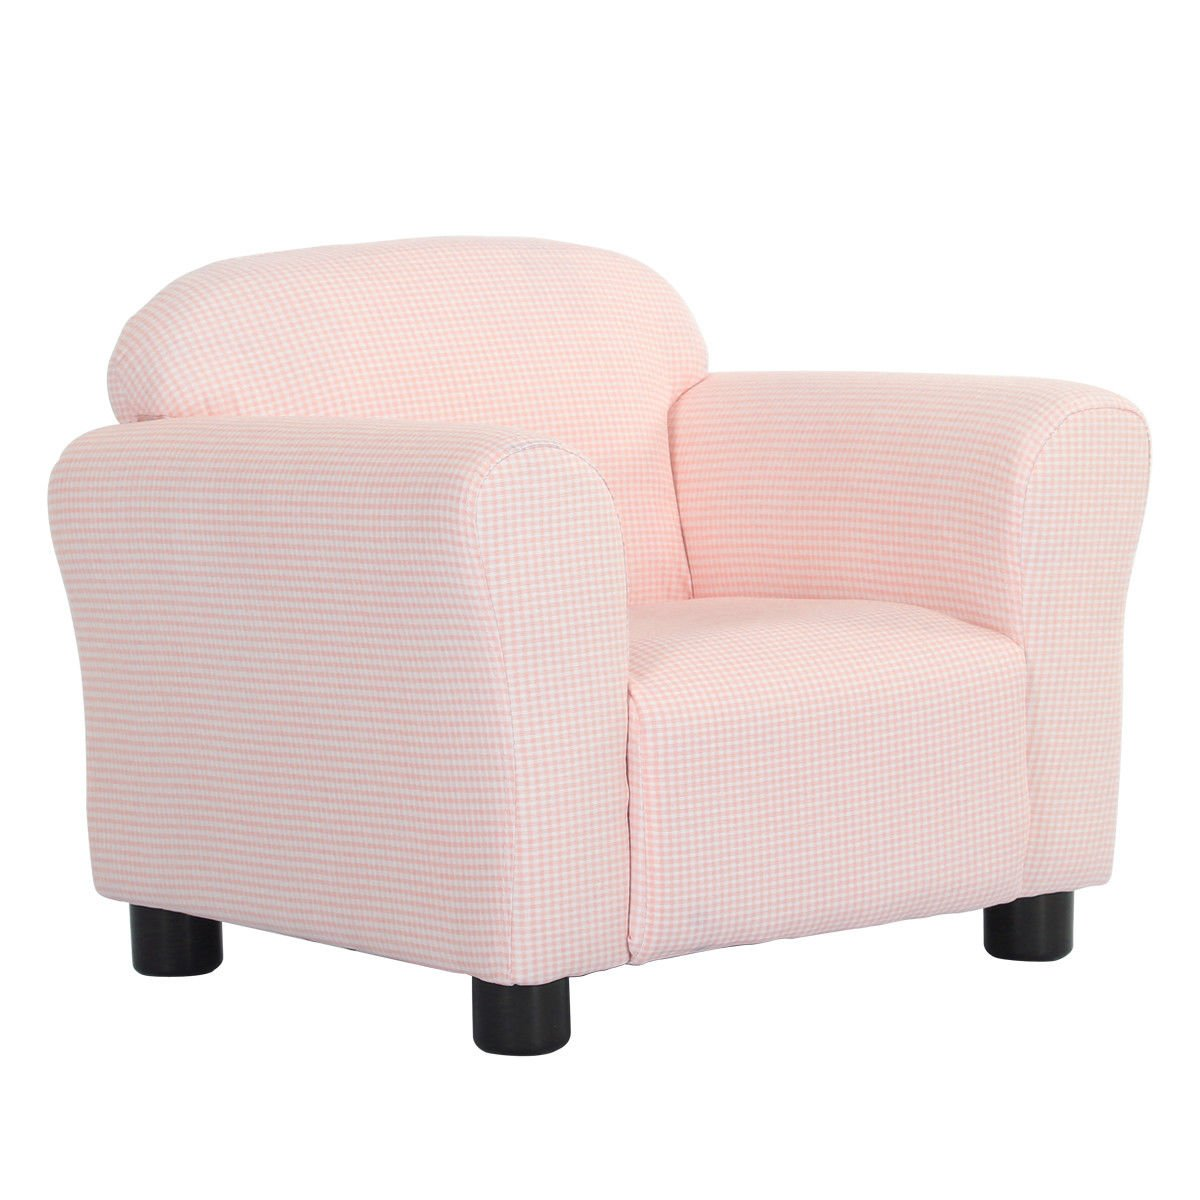 Costzon Kids Sofa, Toddler Gingham Roundy Armrest Chair Couch for Girls & Boys Bedroom Living Room, Children Furniture (Pink)